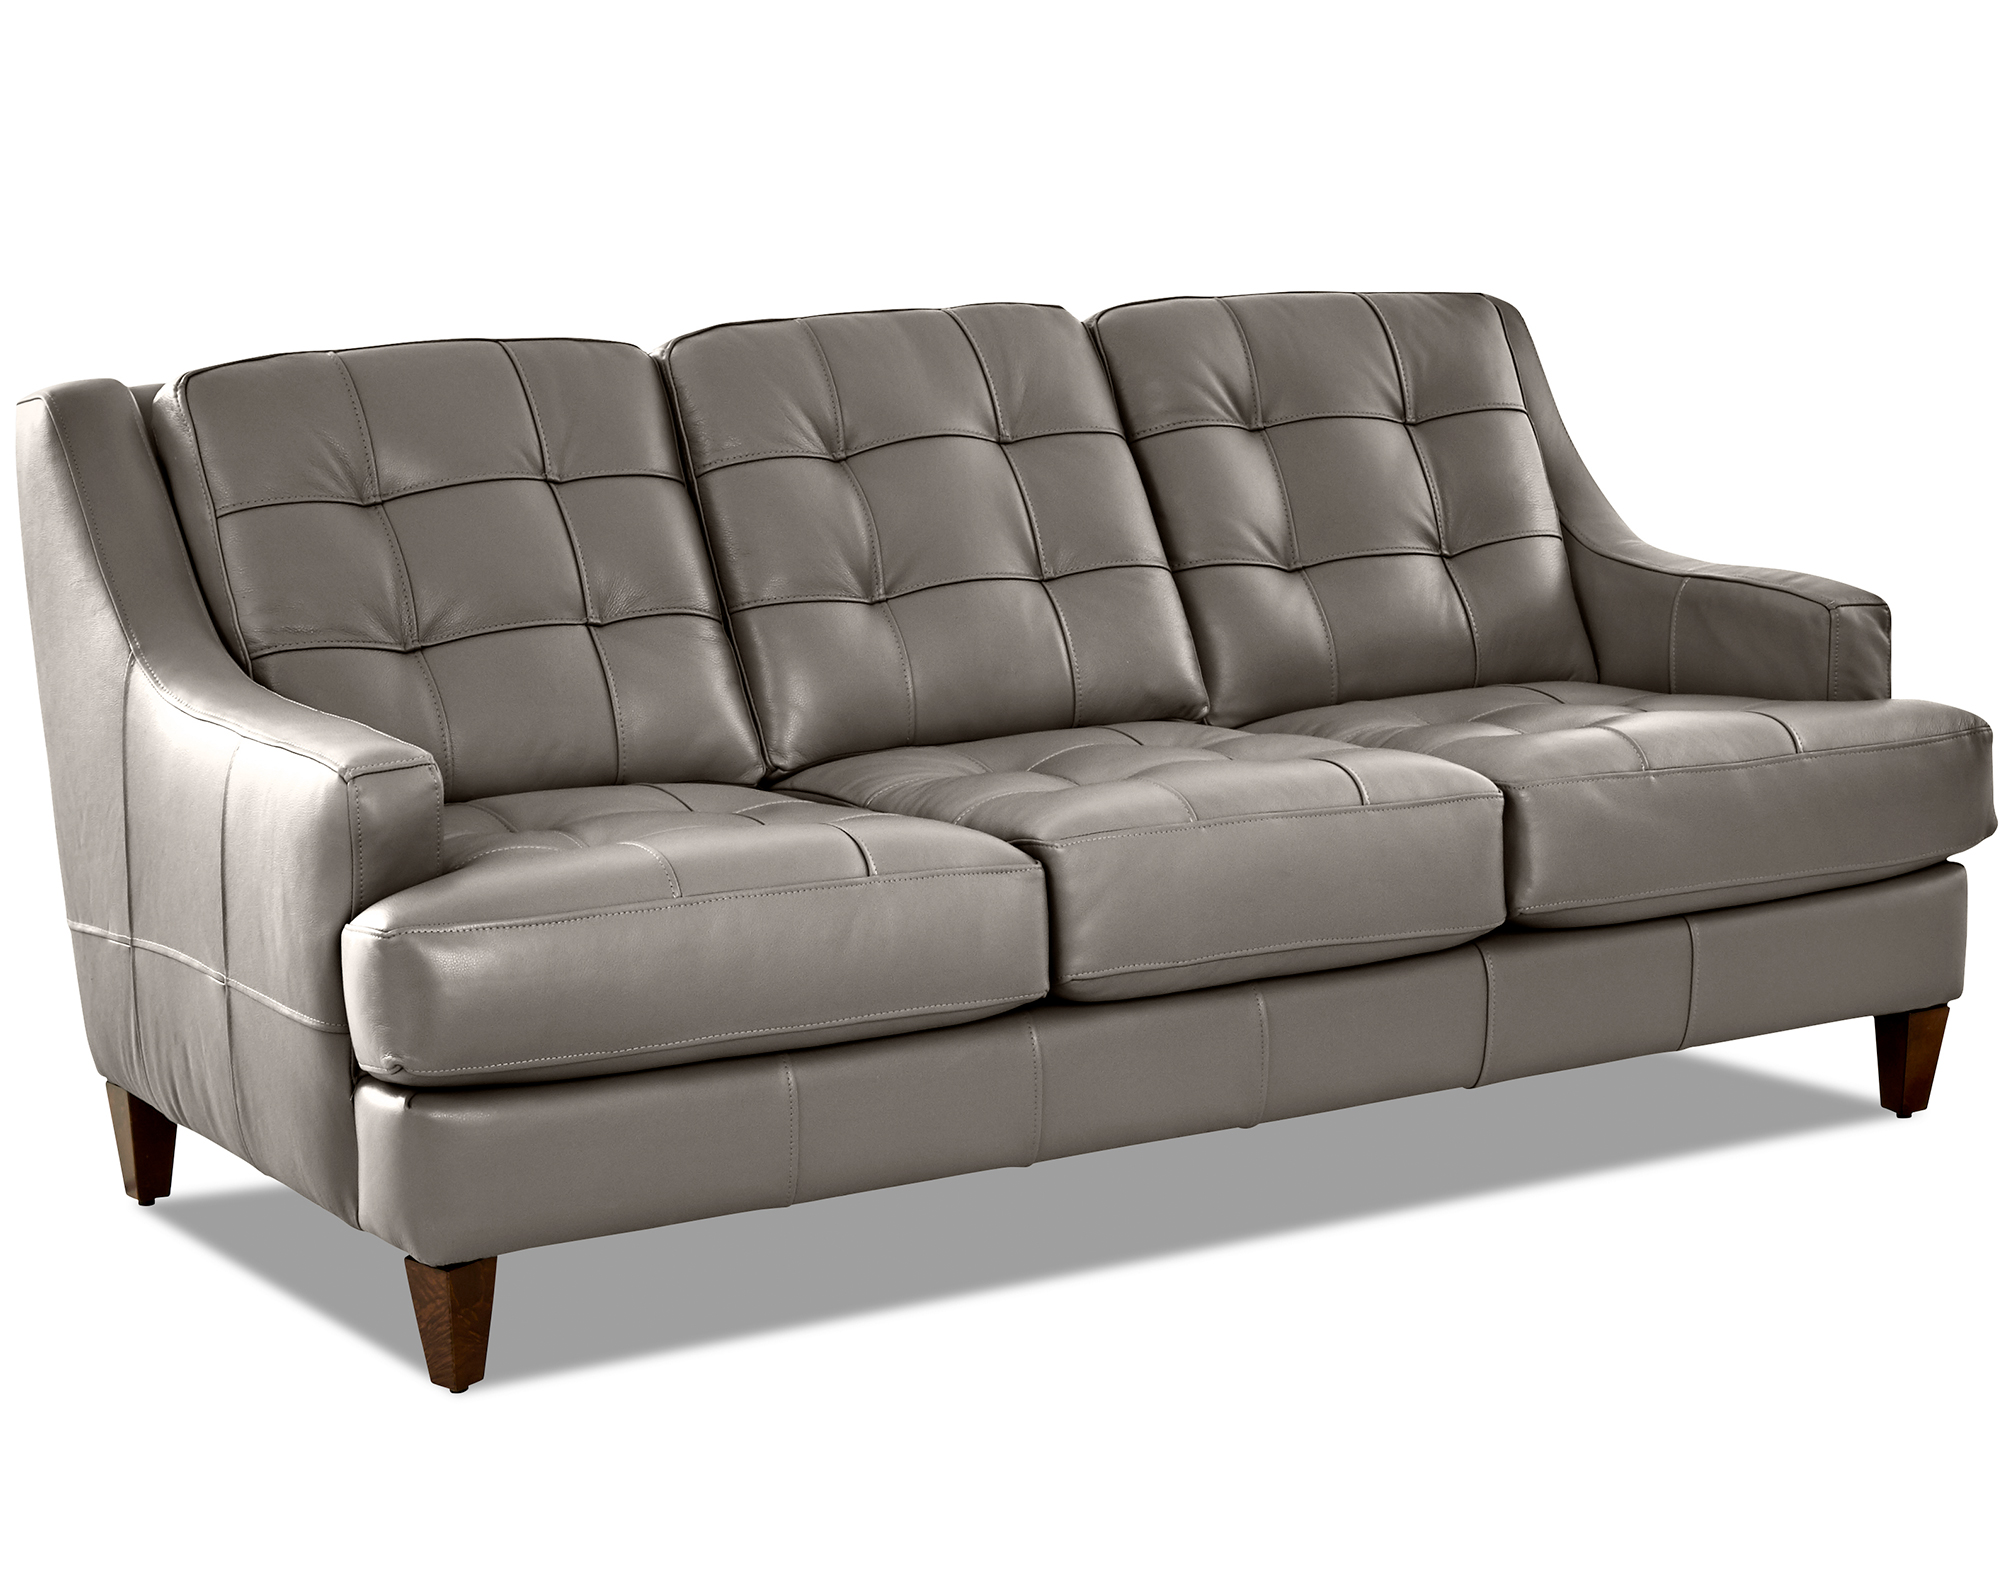 Miraculous Franco 80 Leather Sofa 3 Colors Sofas And Sectionals Ocoug Best Dining Table And Chair Ideas Images Ocougorg